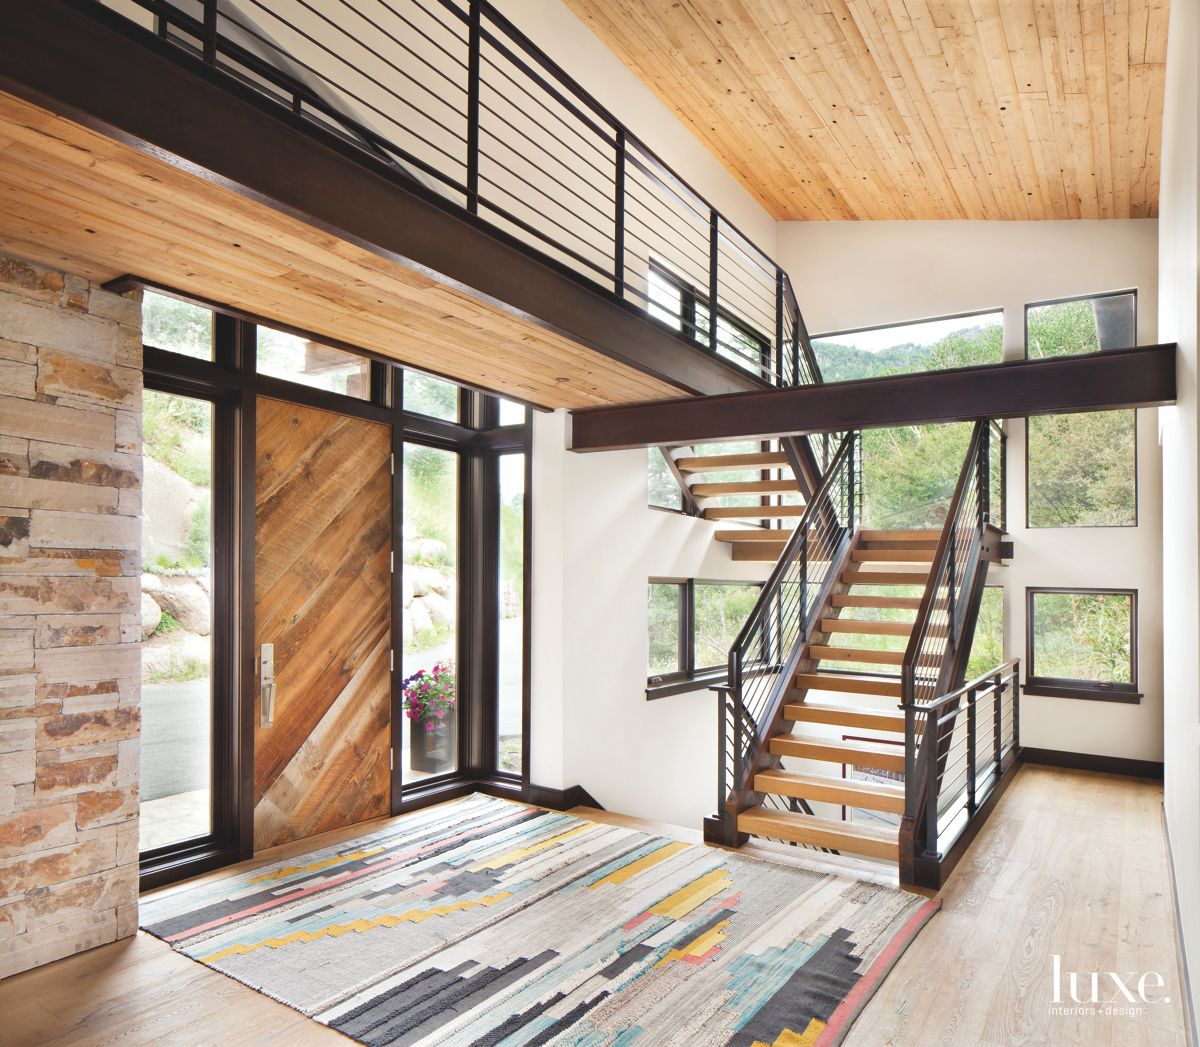 Reclaimed Wood Door Entrance with Contemporary Staircase and Windows